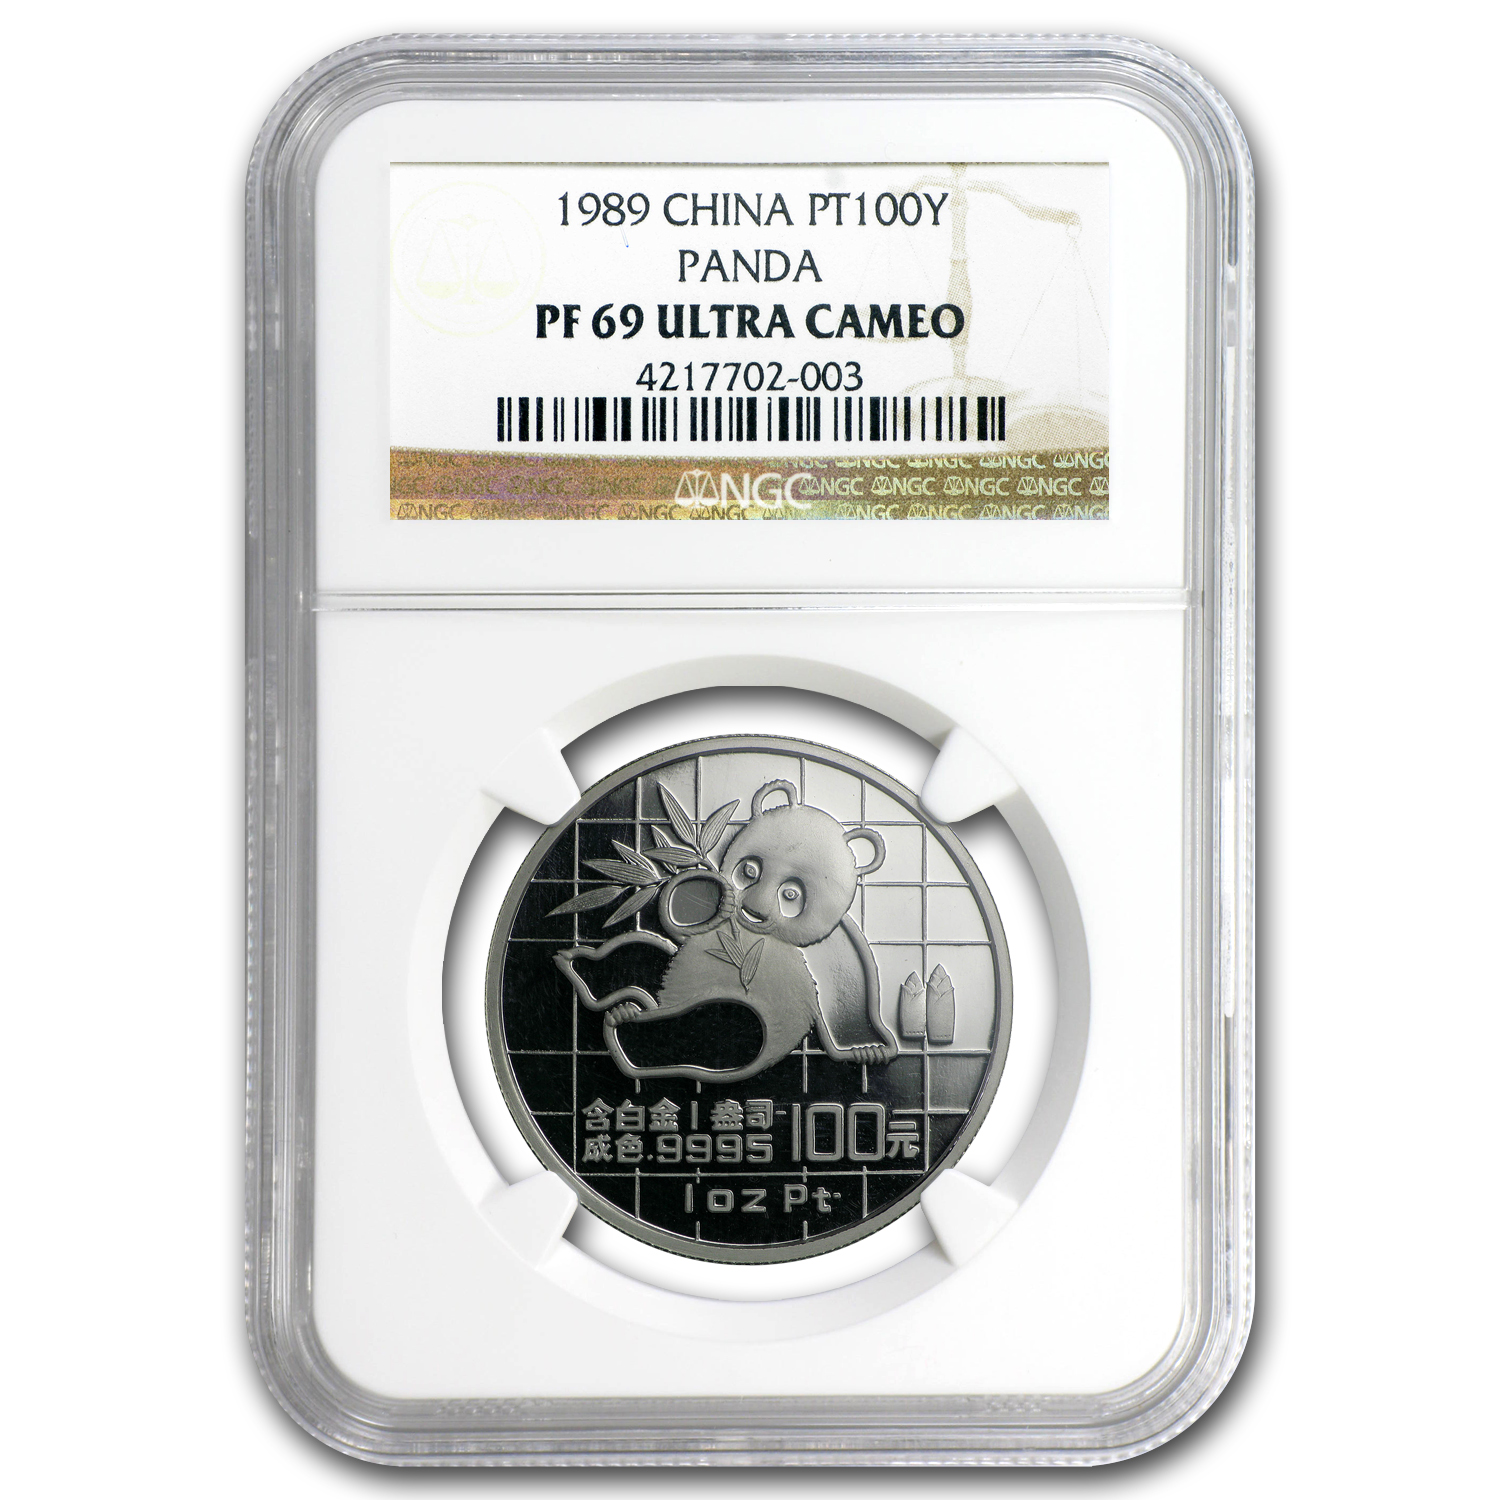 1989 China 1 oz Proof Platinum Panda PF-69 NGC